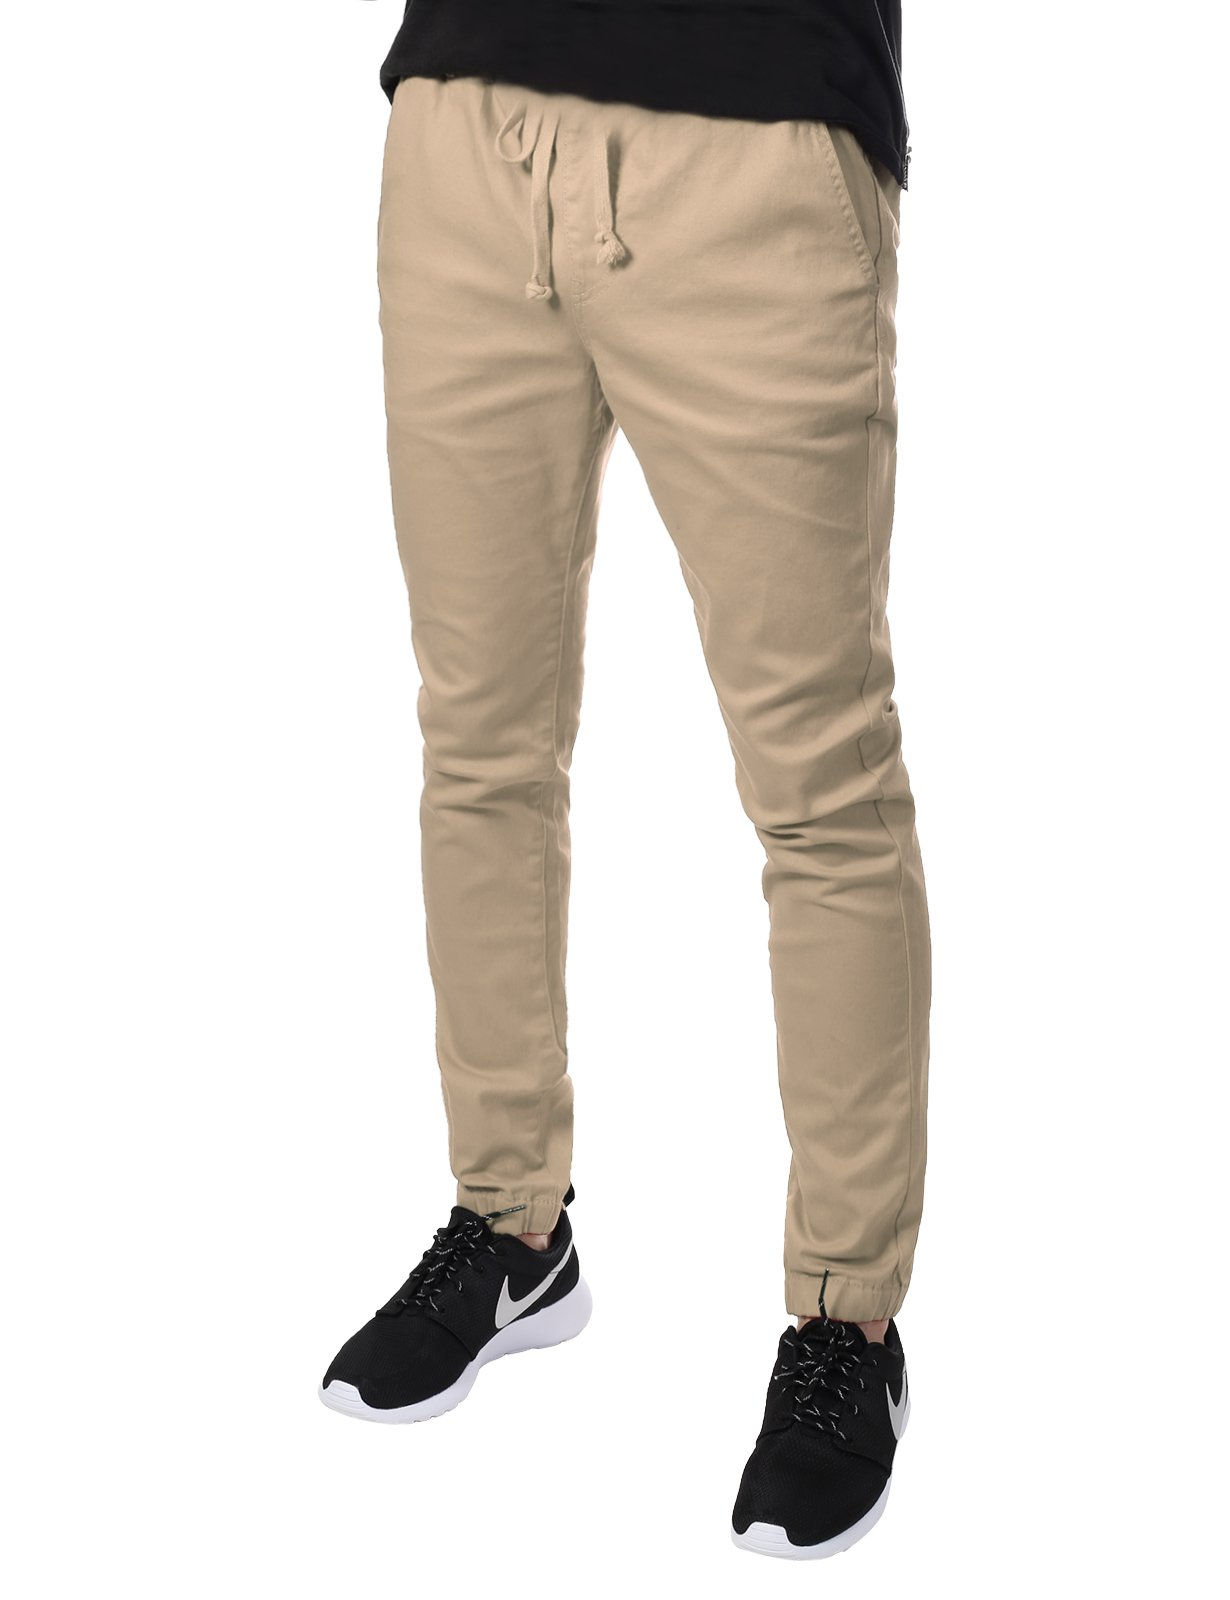 JD Apparel Men's Skinny Fit Harem Joggers Large Khaki